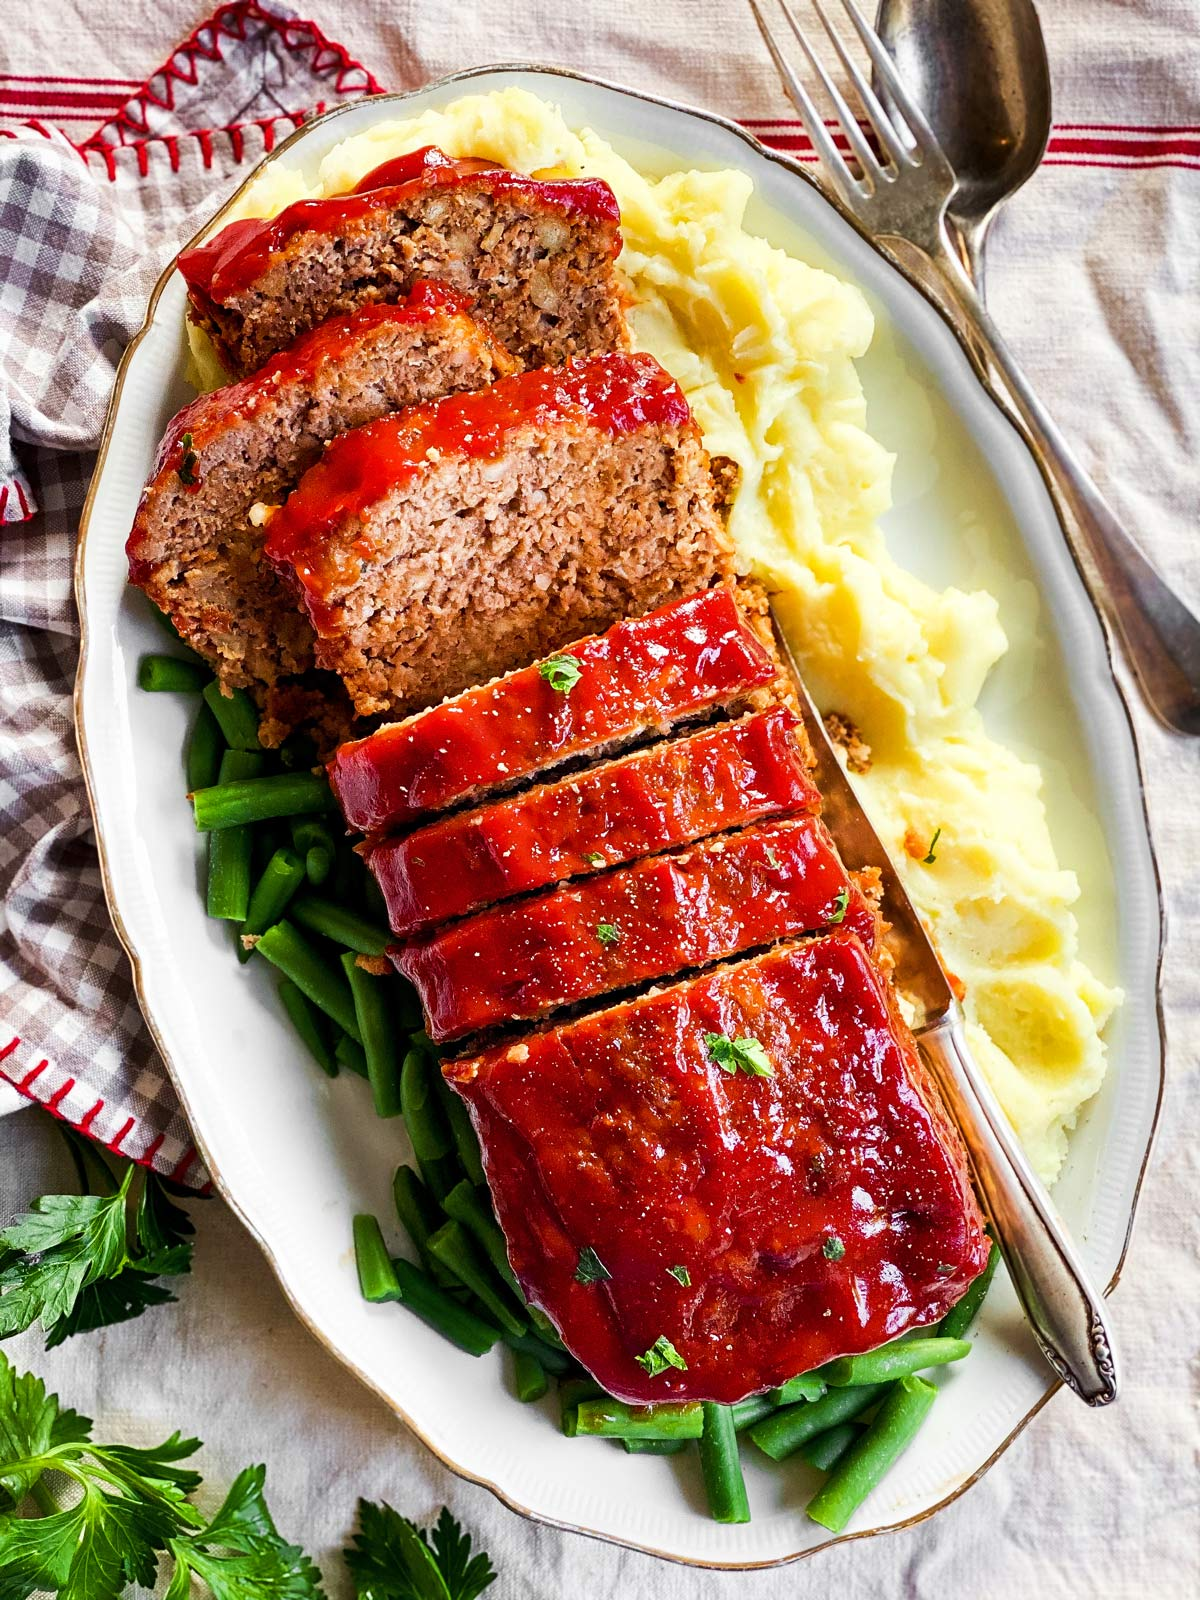 sliced meatloaf on a platter with mashed potatoes and green beans